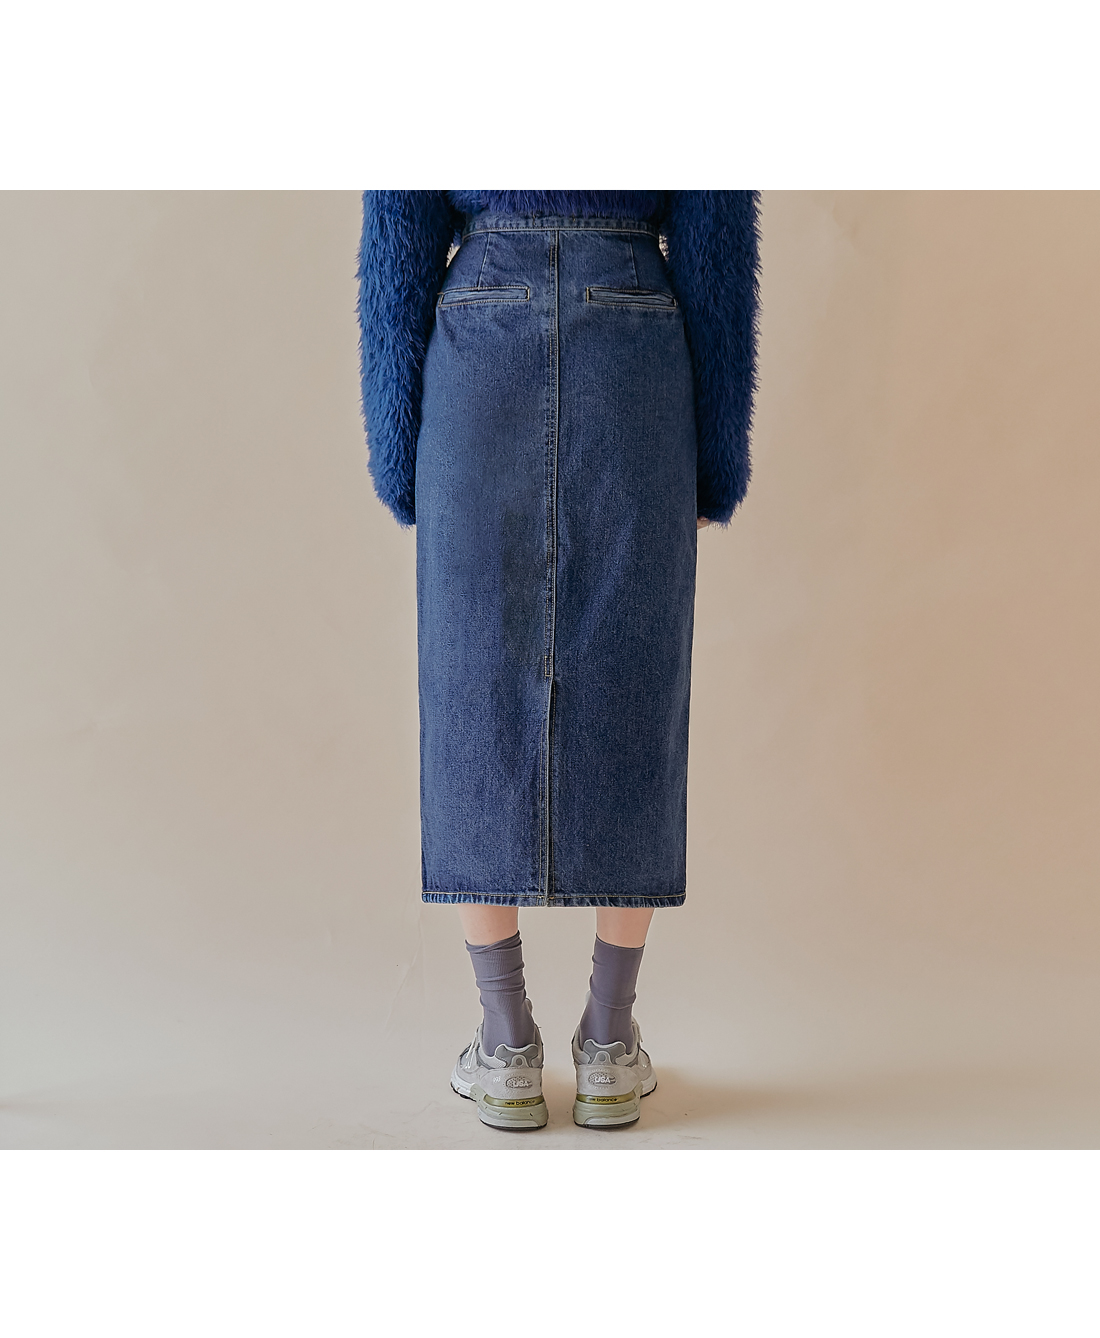 LAMP SLIT DENIM LONG SKIRT